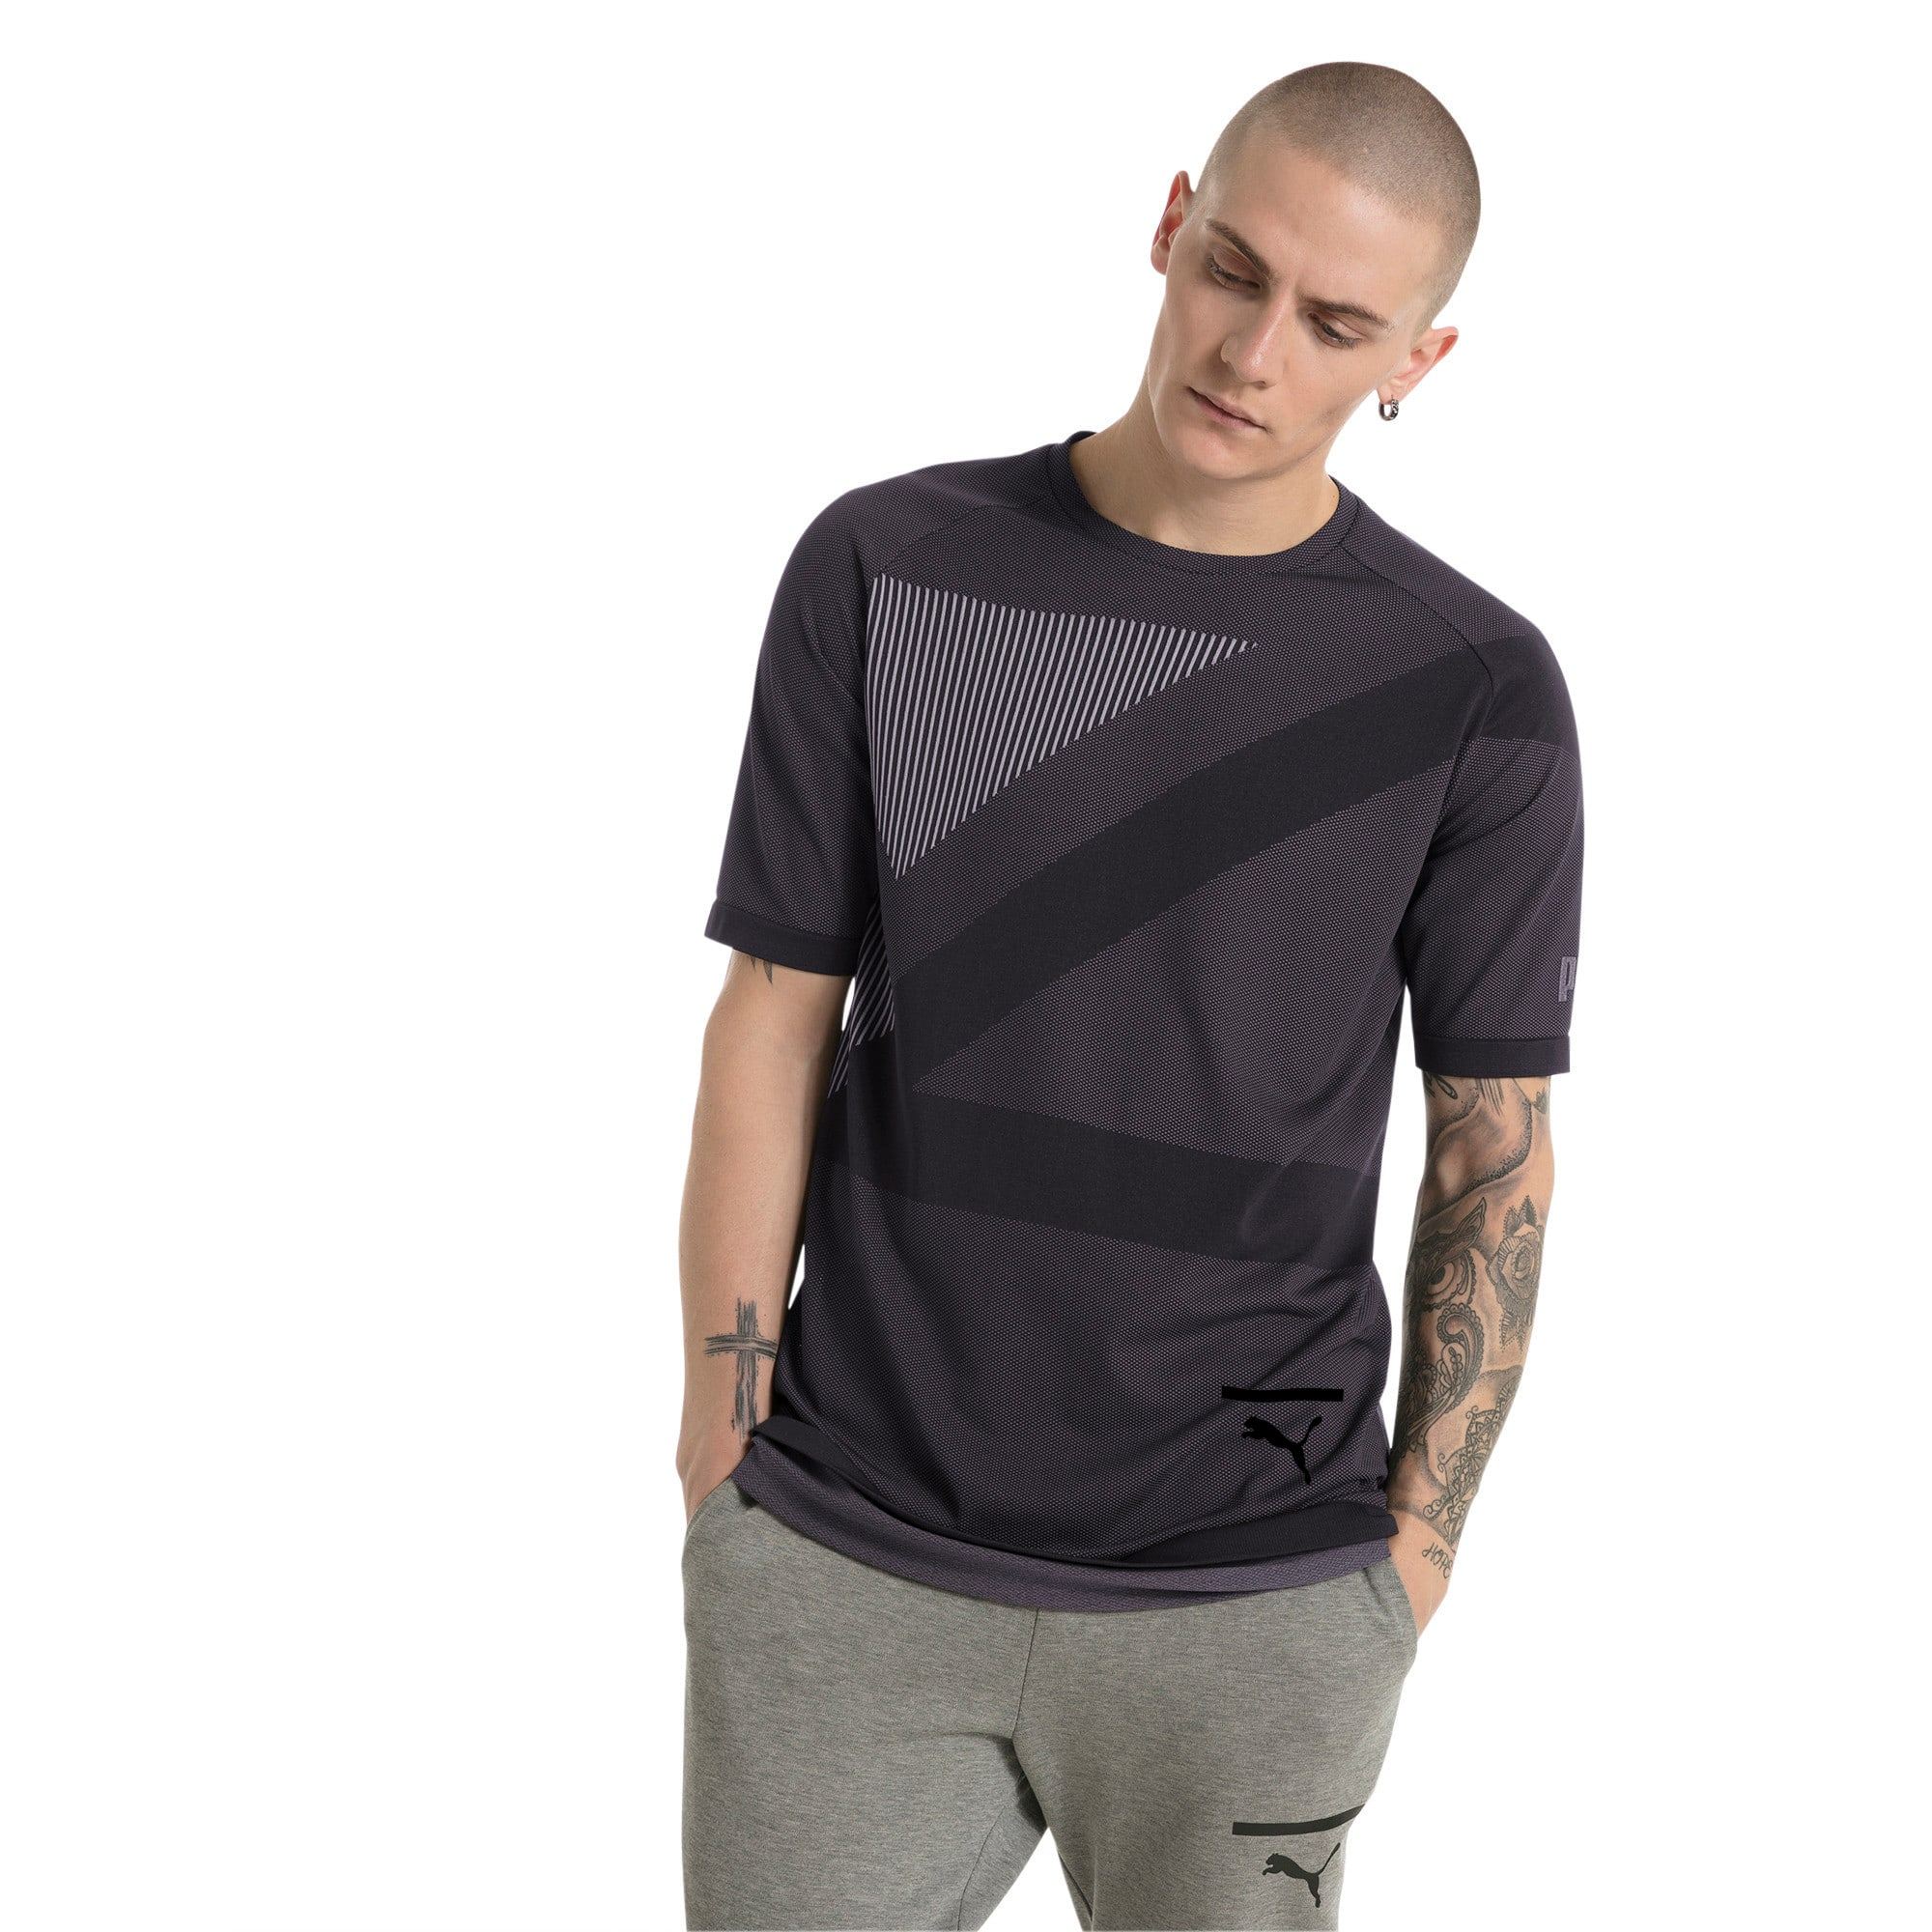 Thumbnail 2 of Evolution Men's evoKNIT T-Shirt, Puma Black, medium-IND